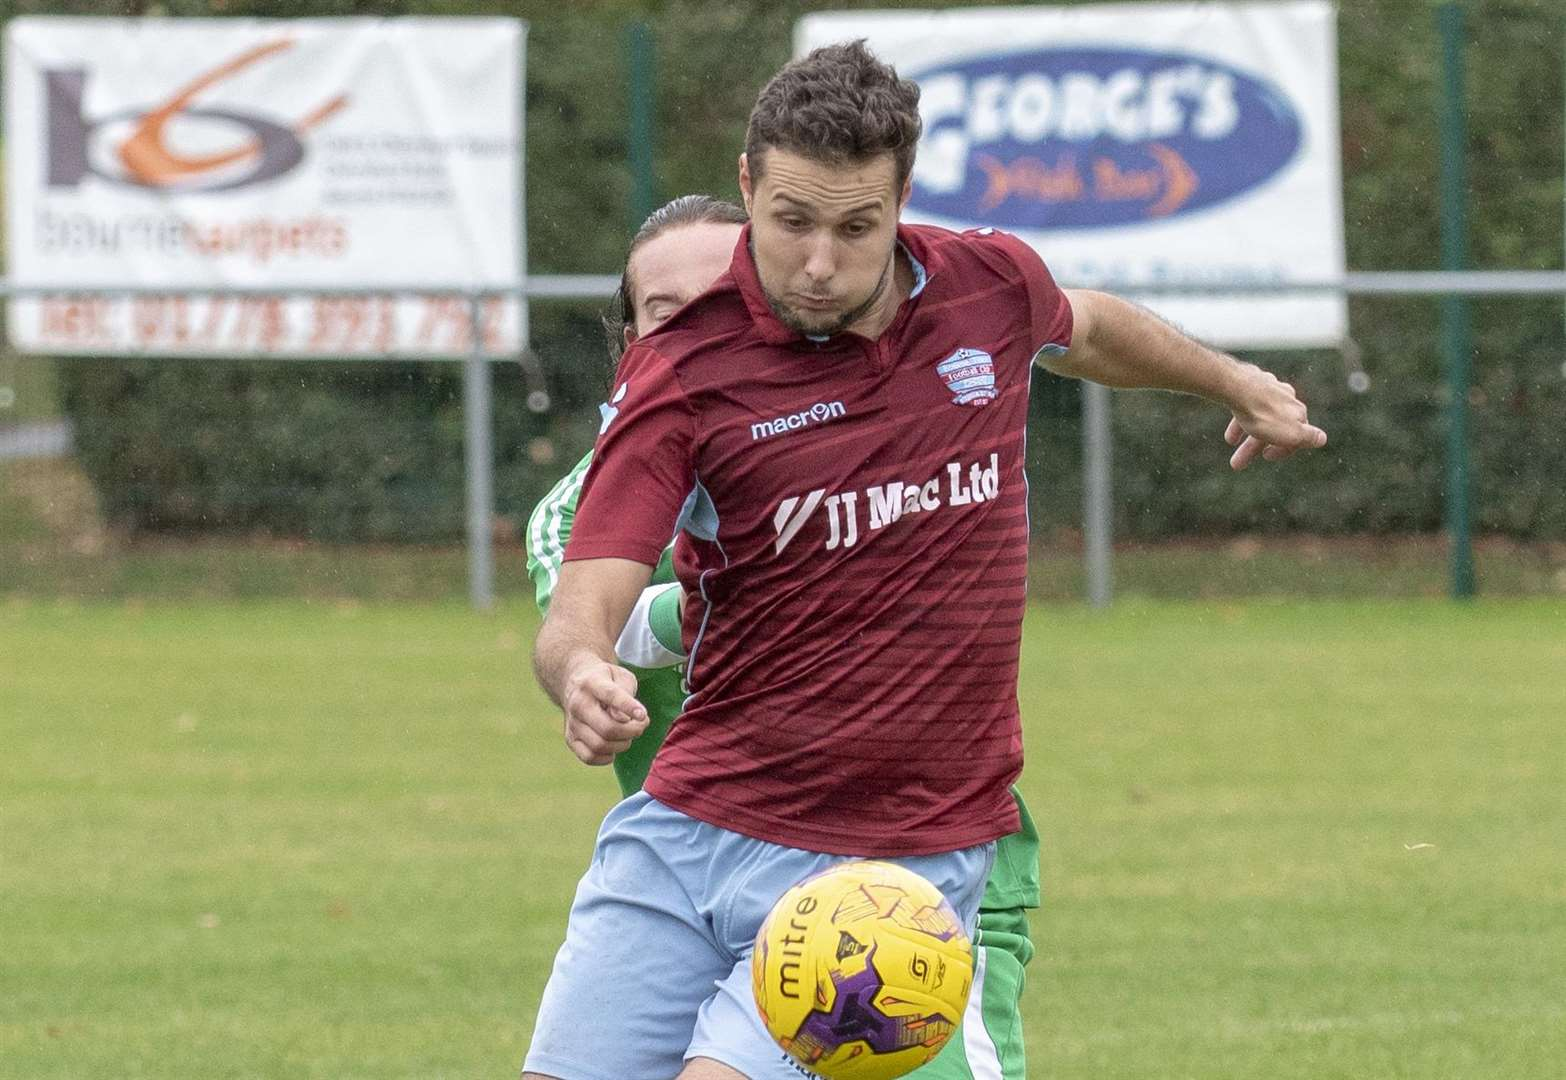 FOOTBALL: Hard work is rewarded as Wakes target third successive league victory